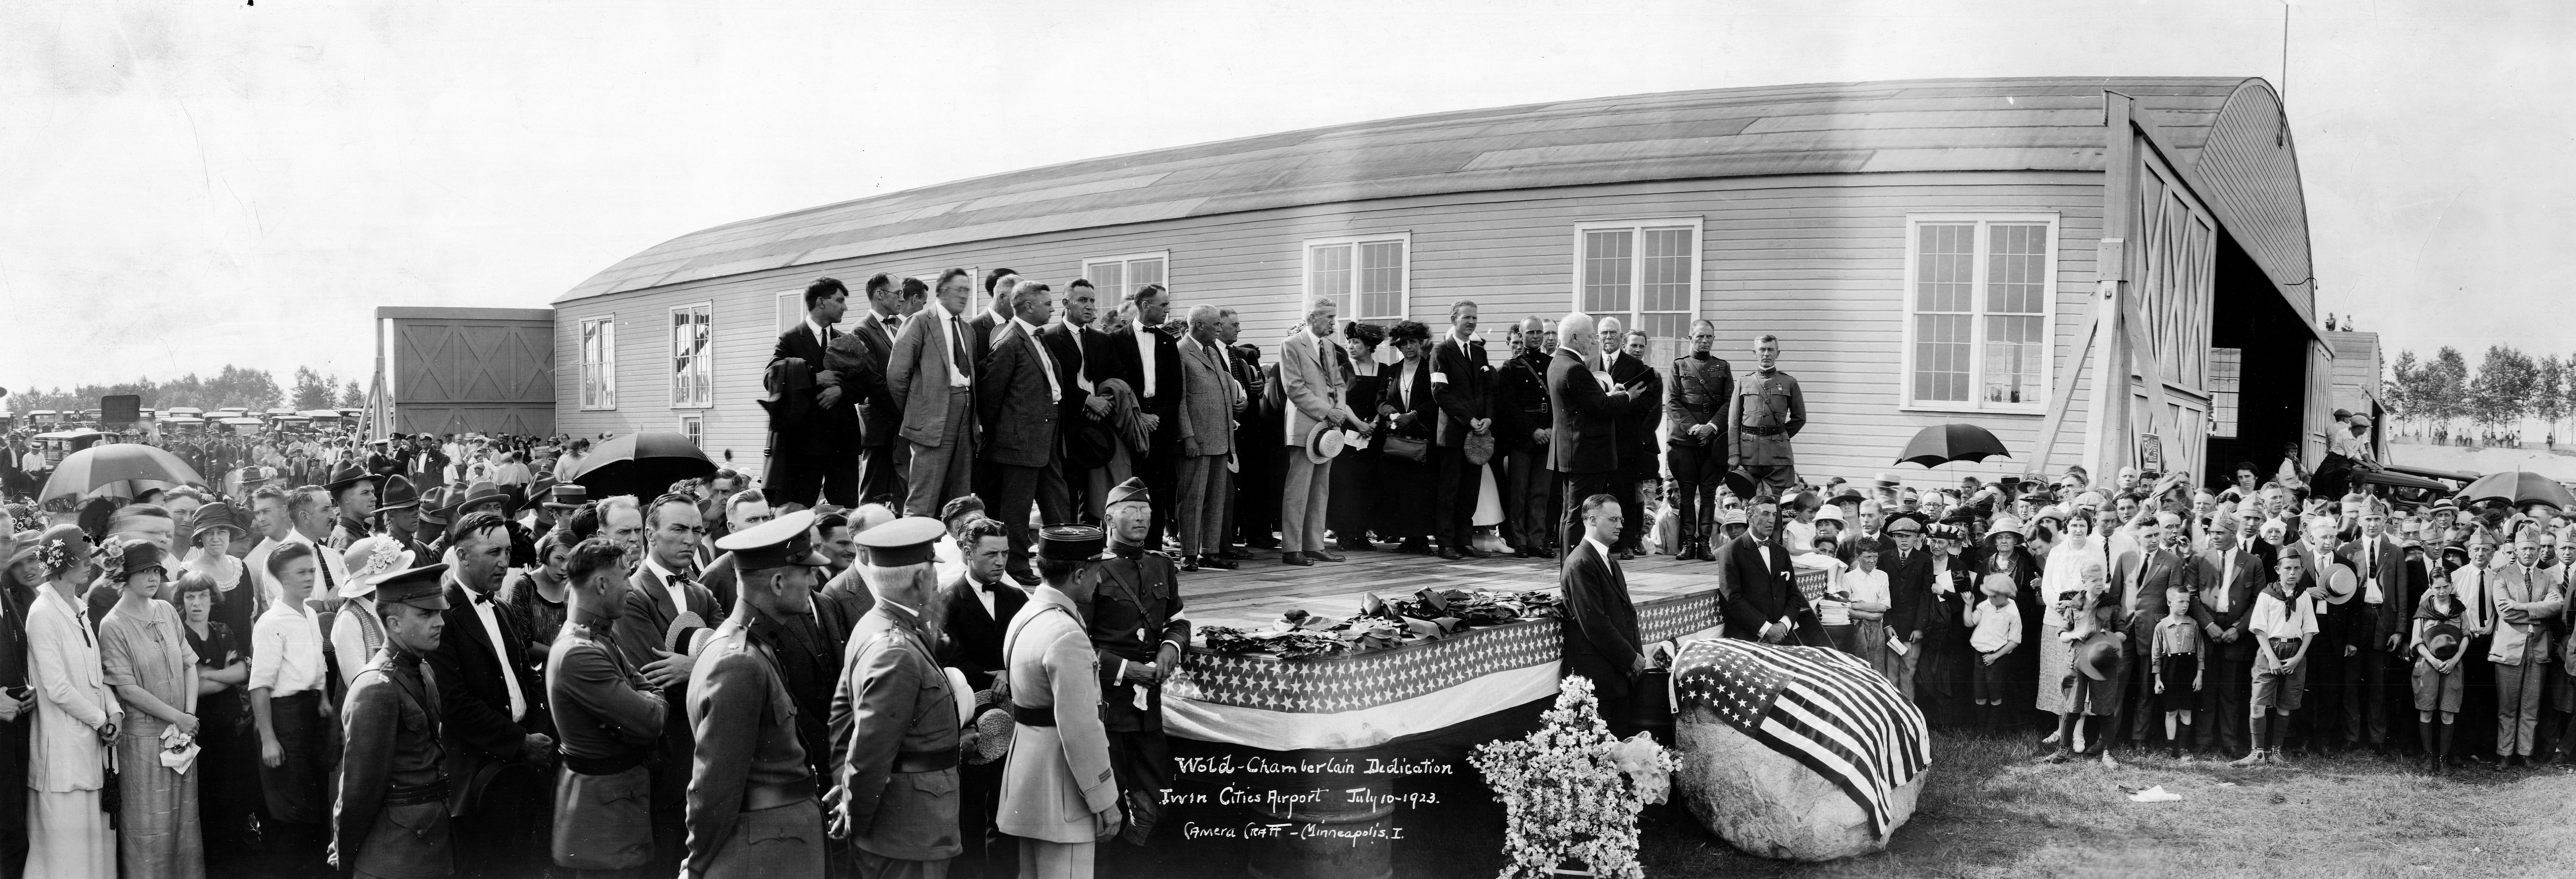 A large crowd assembled for the dedication of Wold-Chamberlain Field in 1923.